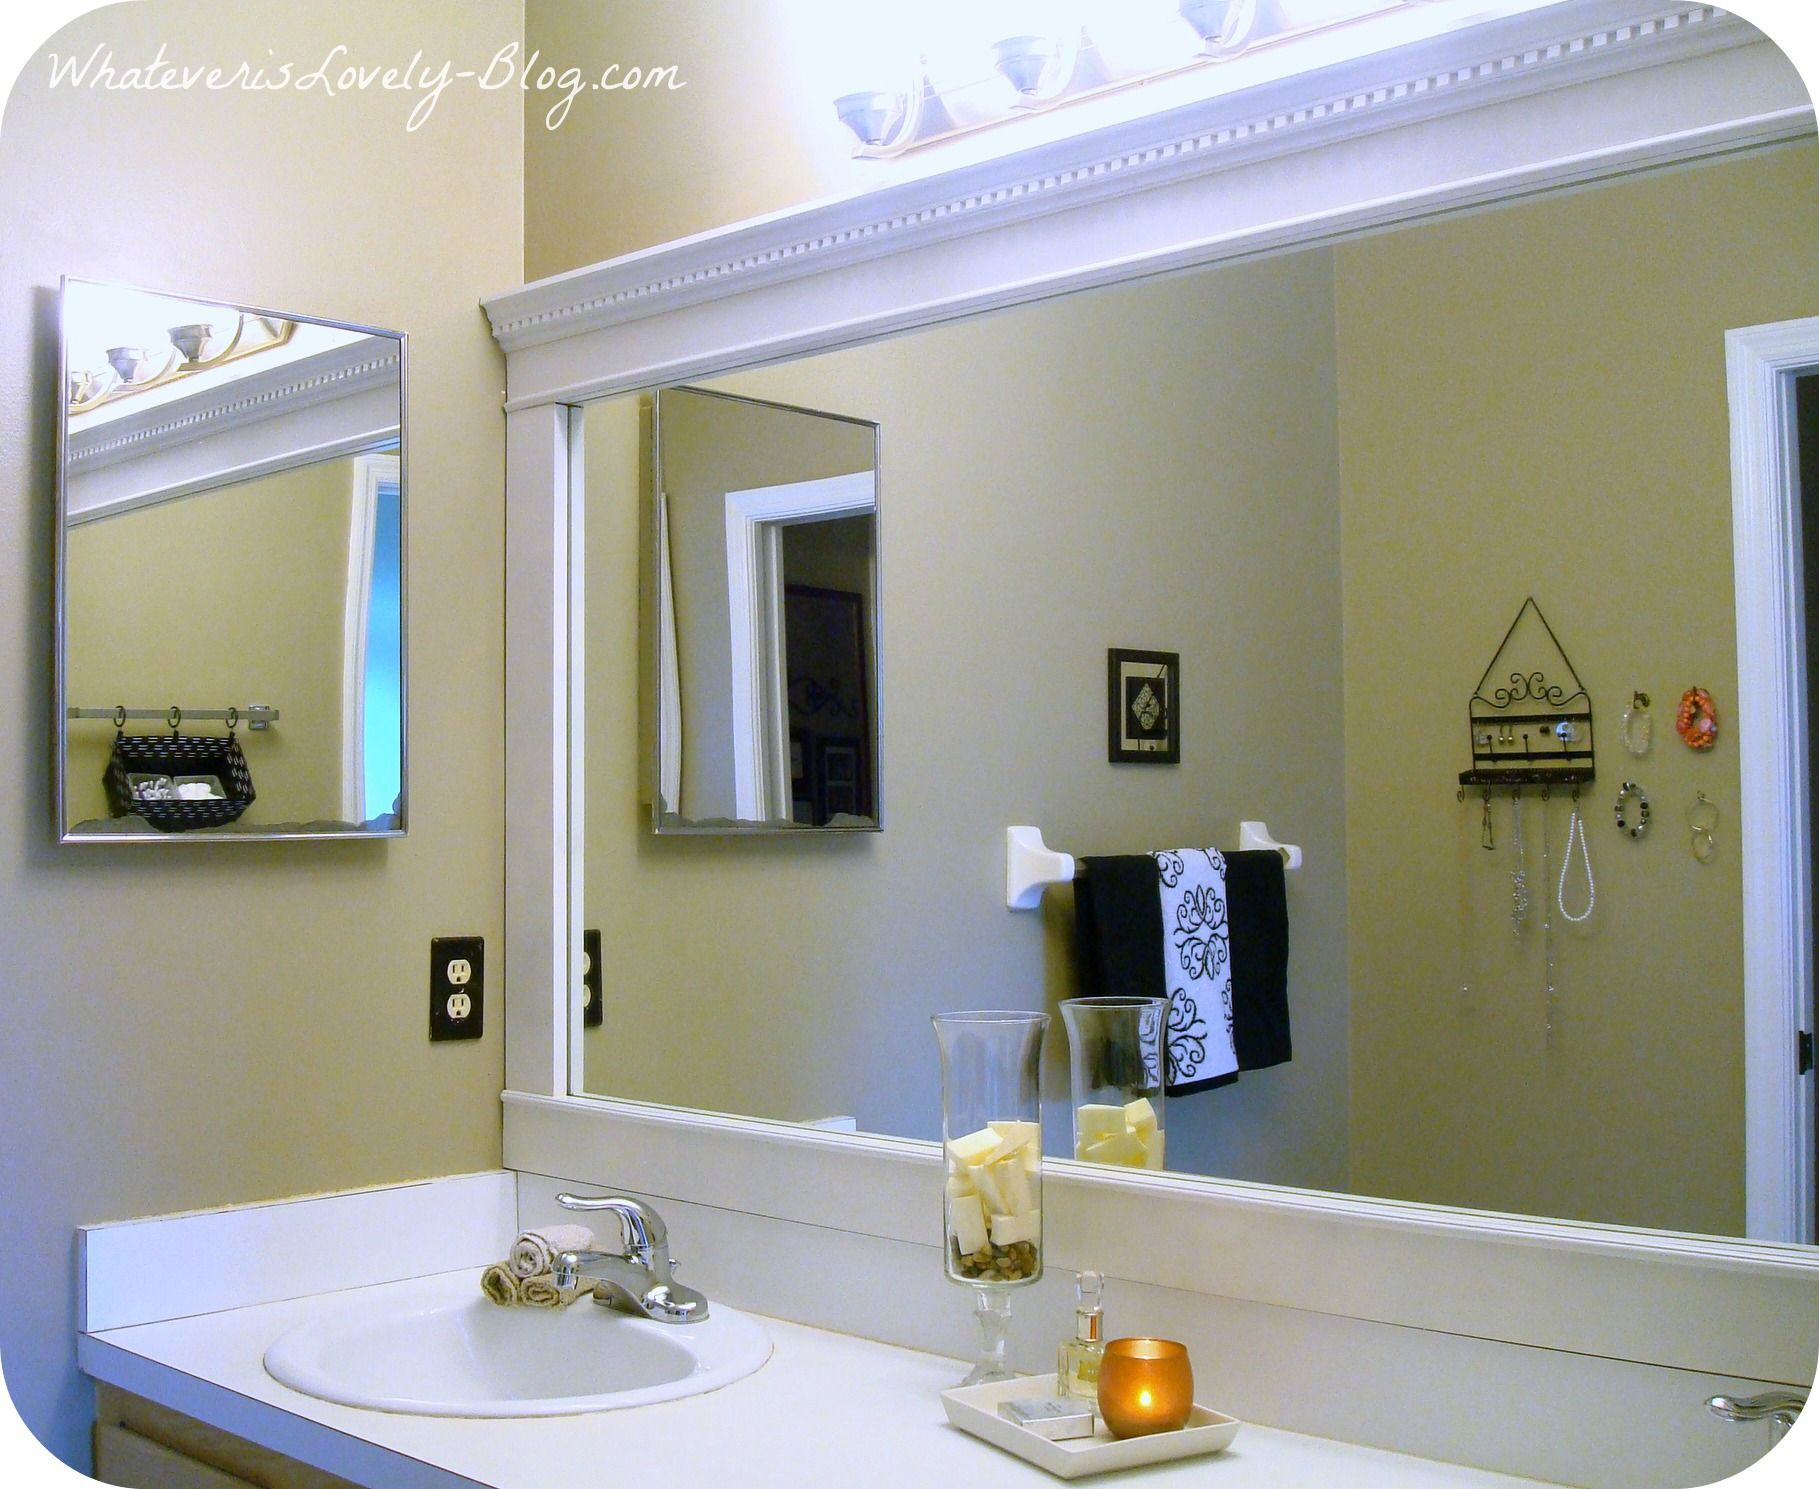 Framed bathroom mirrors ideas - A Reason Why You Shouldn T Demolish Your Old Barn Just Yet Framed Bathroom Mirrorsbuilder